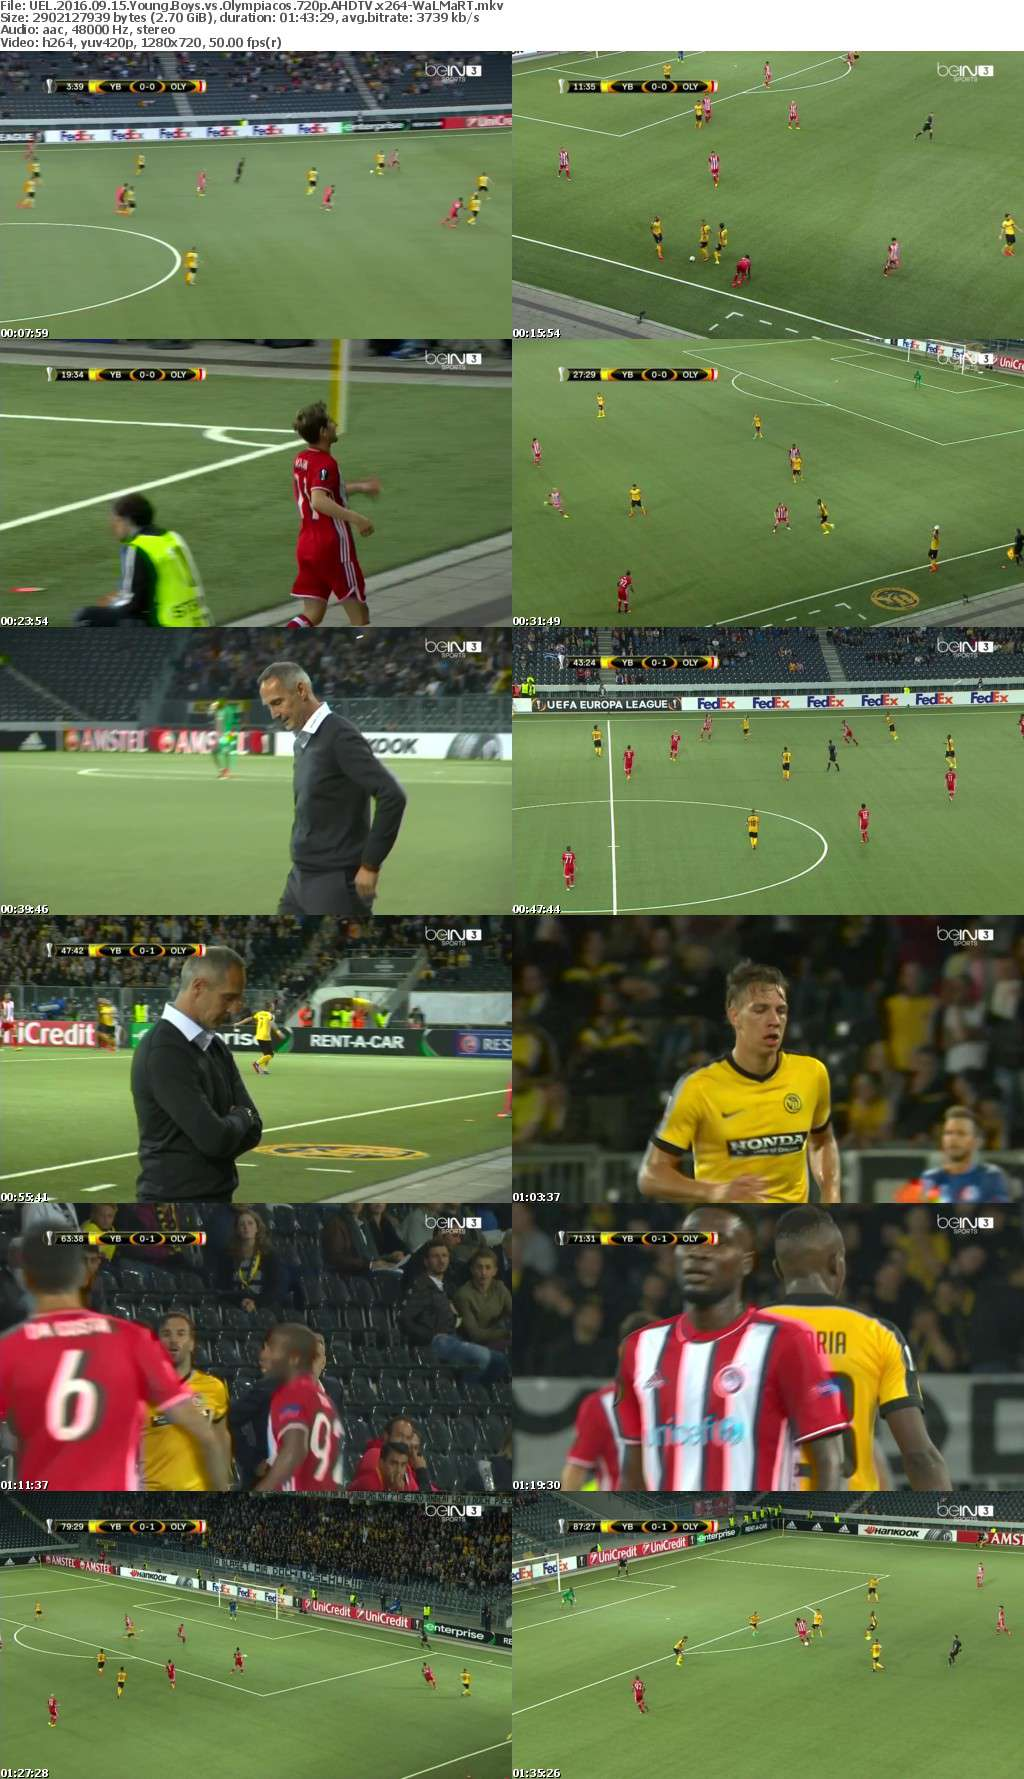 UEL 2016 09 15 Young Boys vs Olympiacos 720p AHDTV x264-WaLMaRT